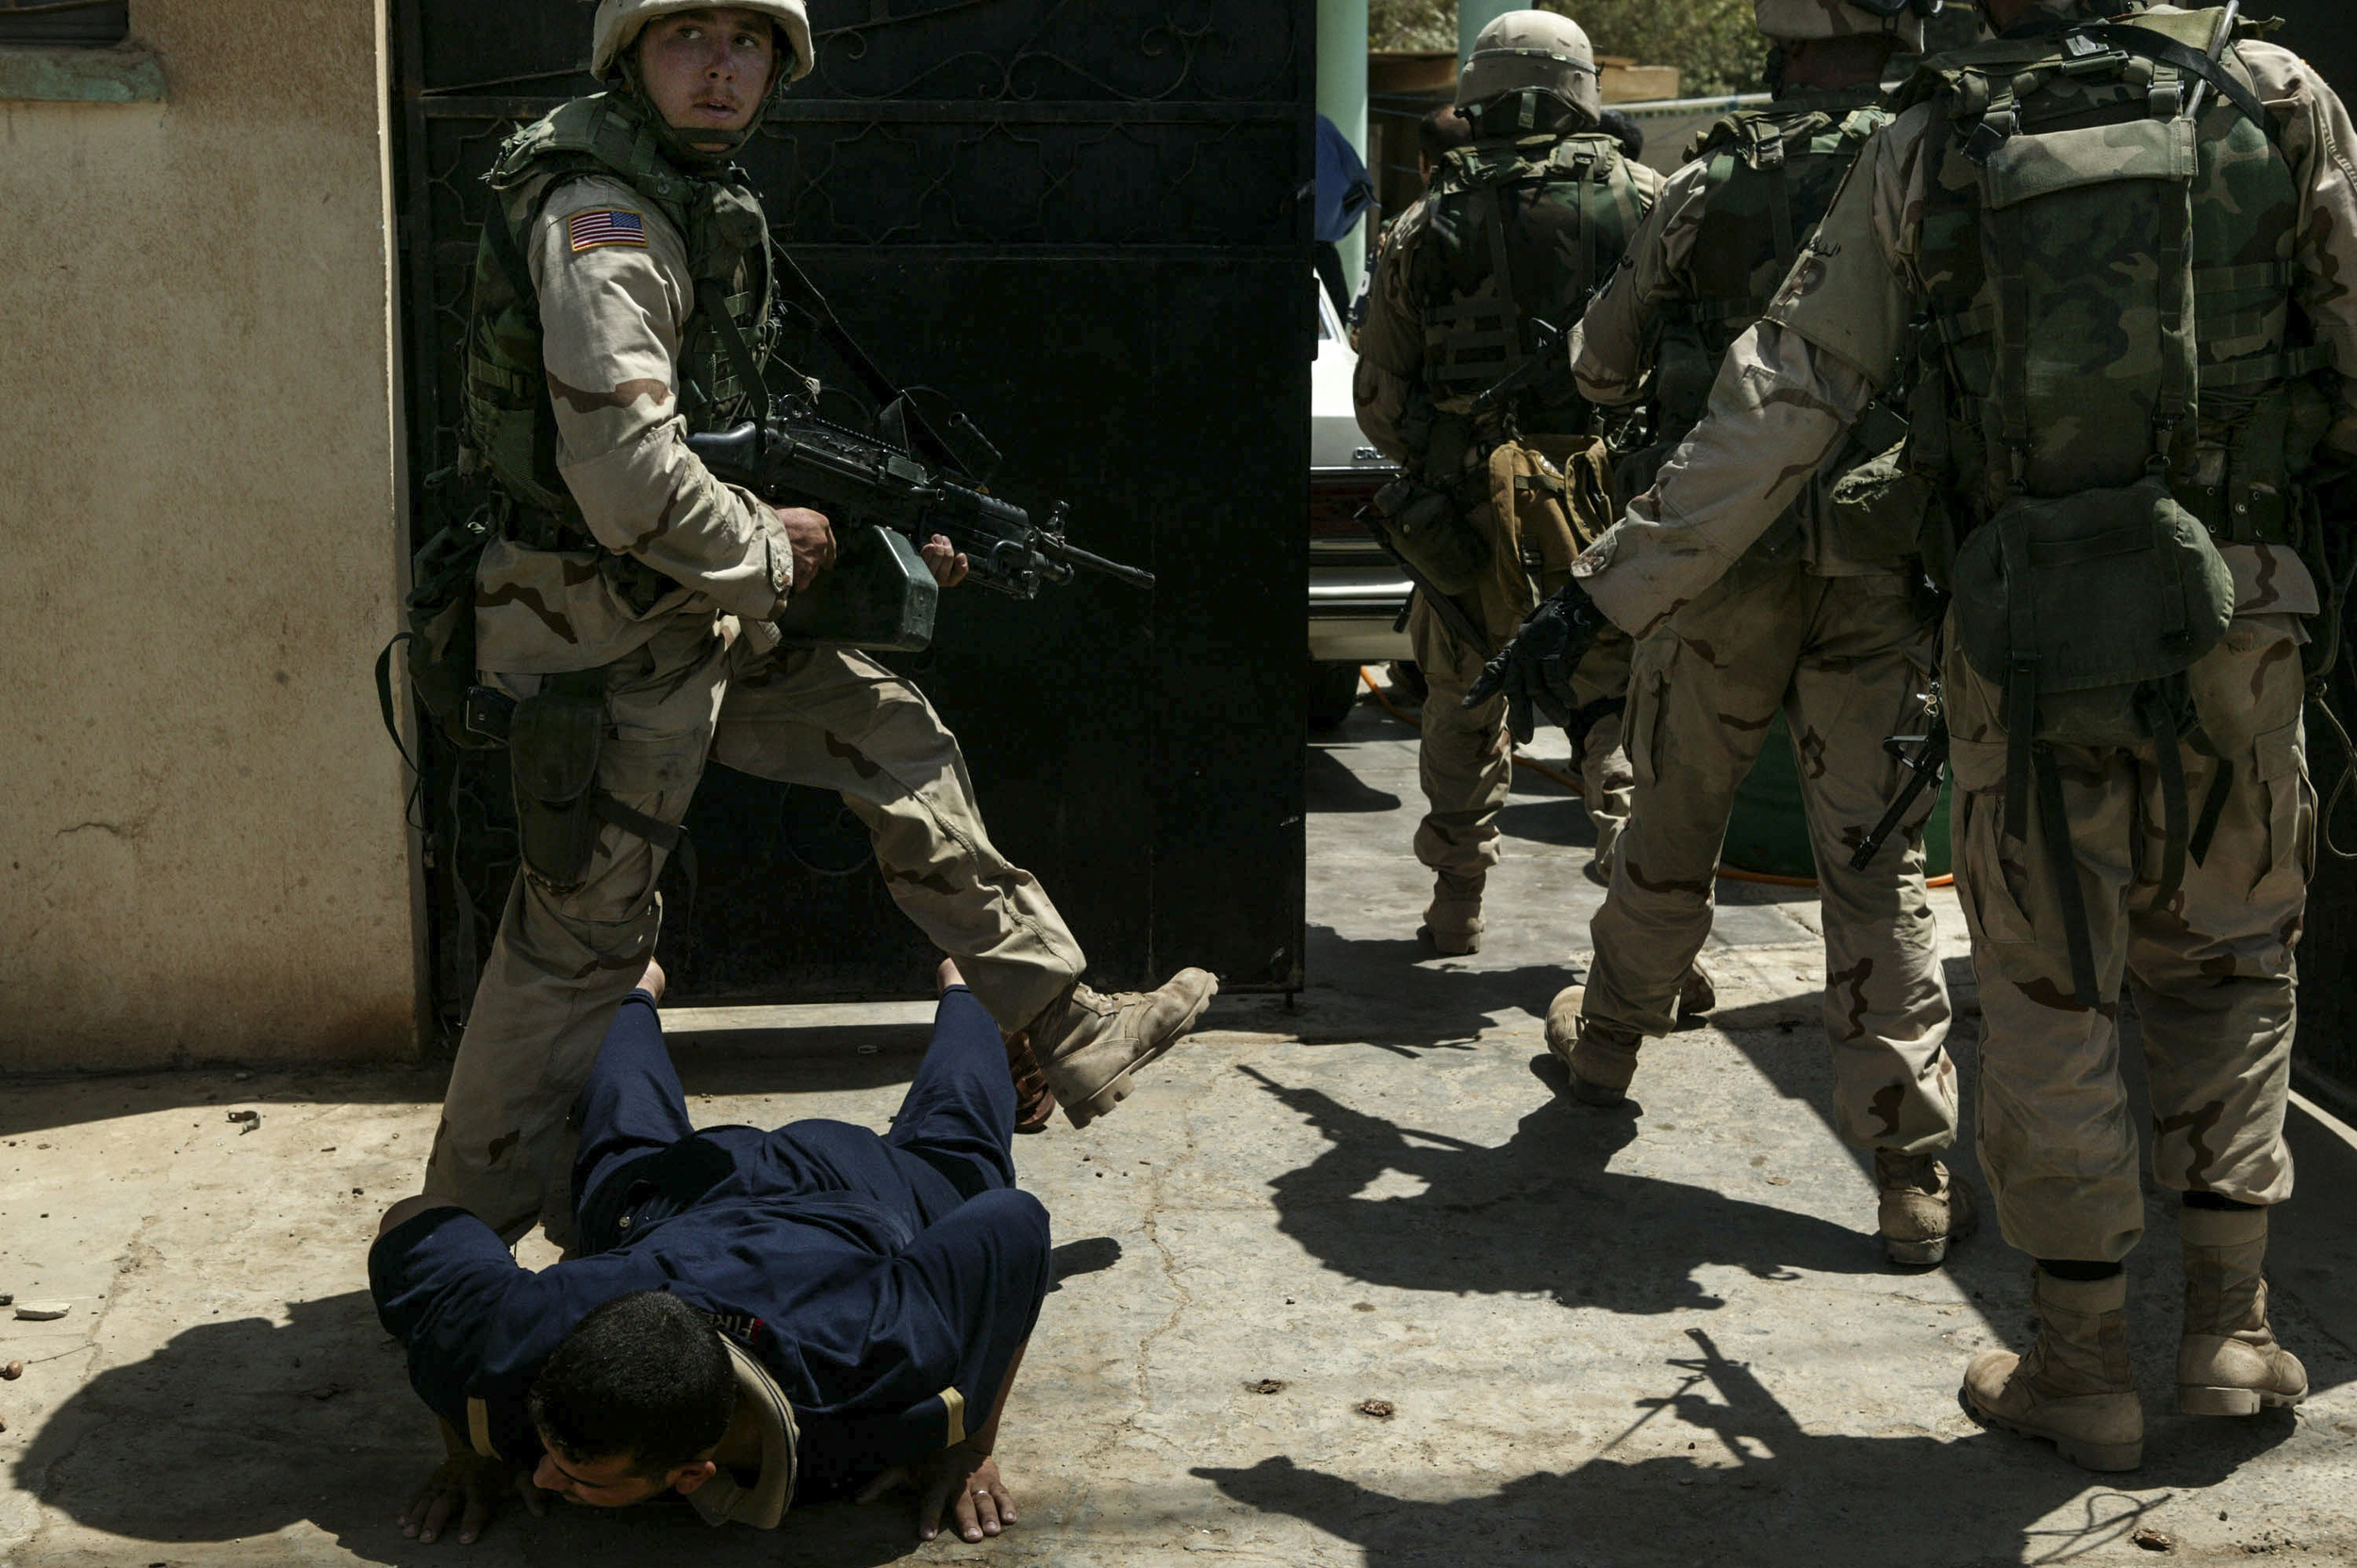 US soldiers entered a house to search for reported rocket propelled grenades (RPGs). After the raid, which turned up no weapons,the military realized they had entered the wrong house.